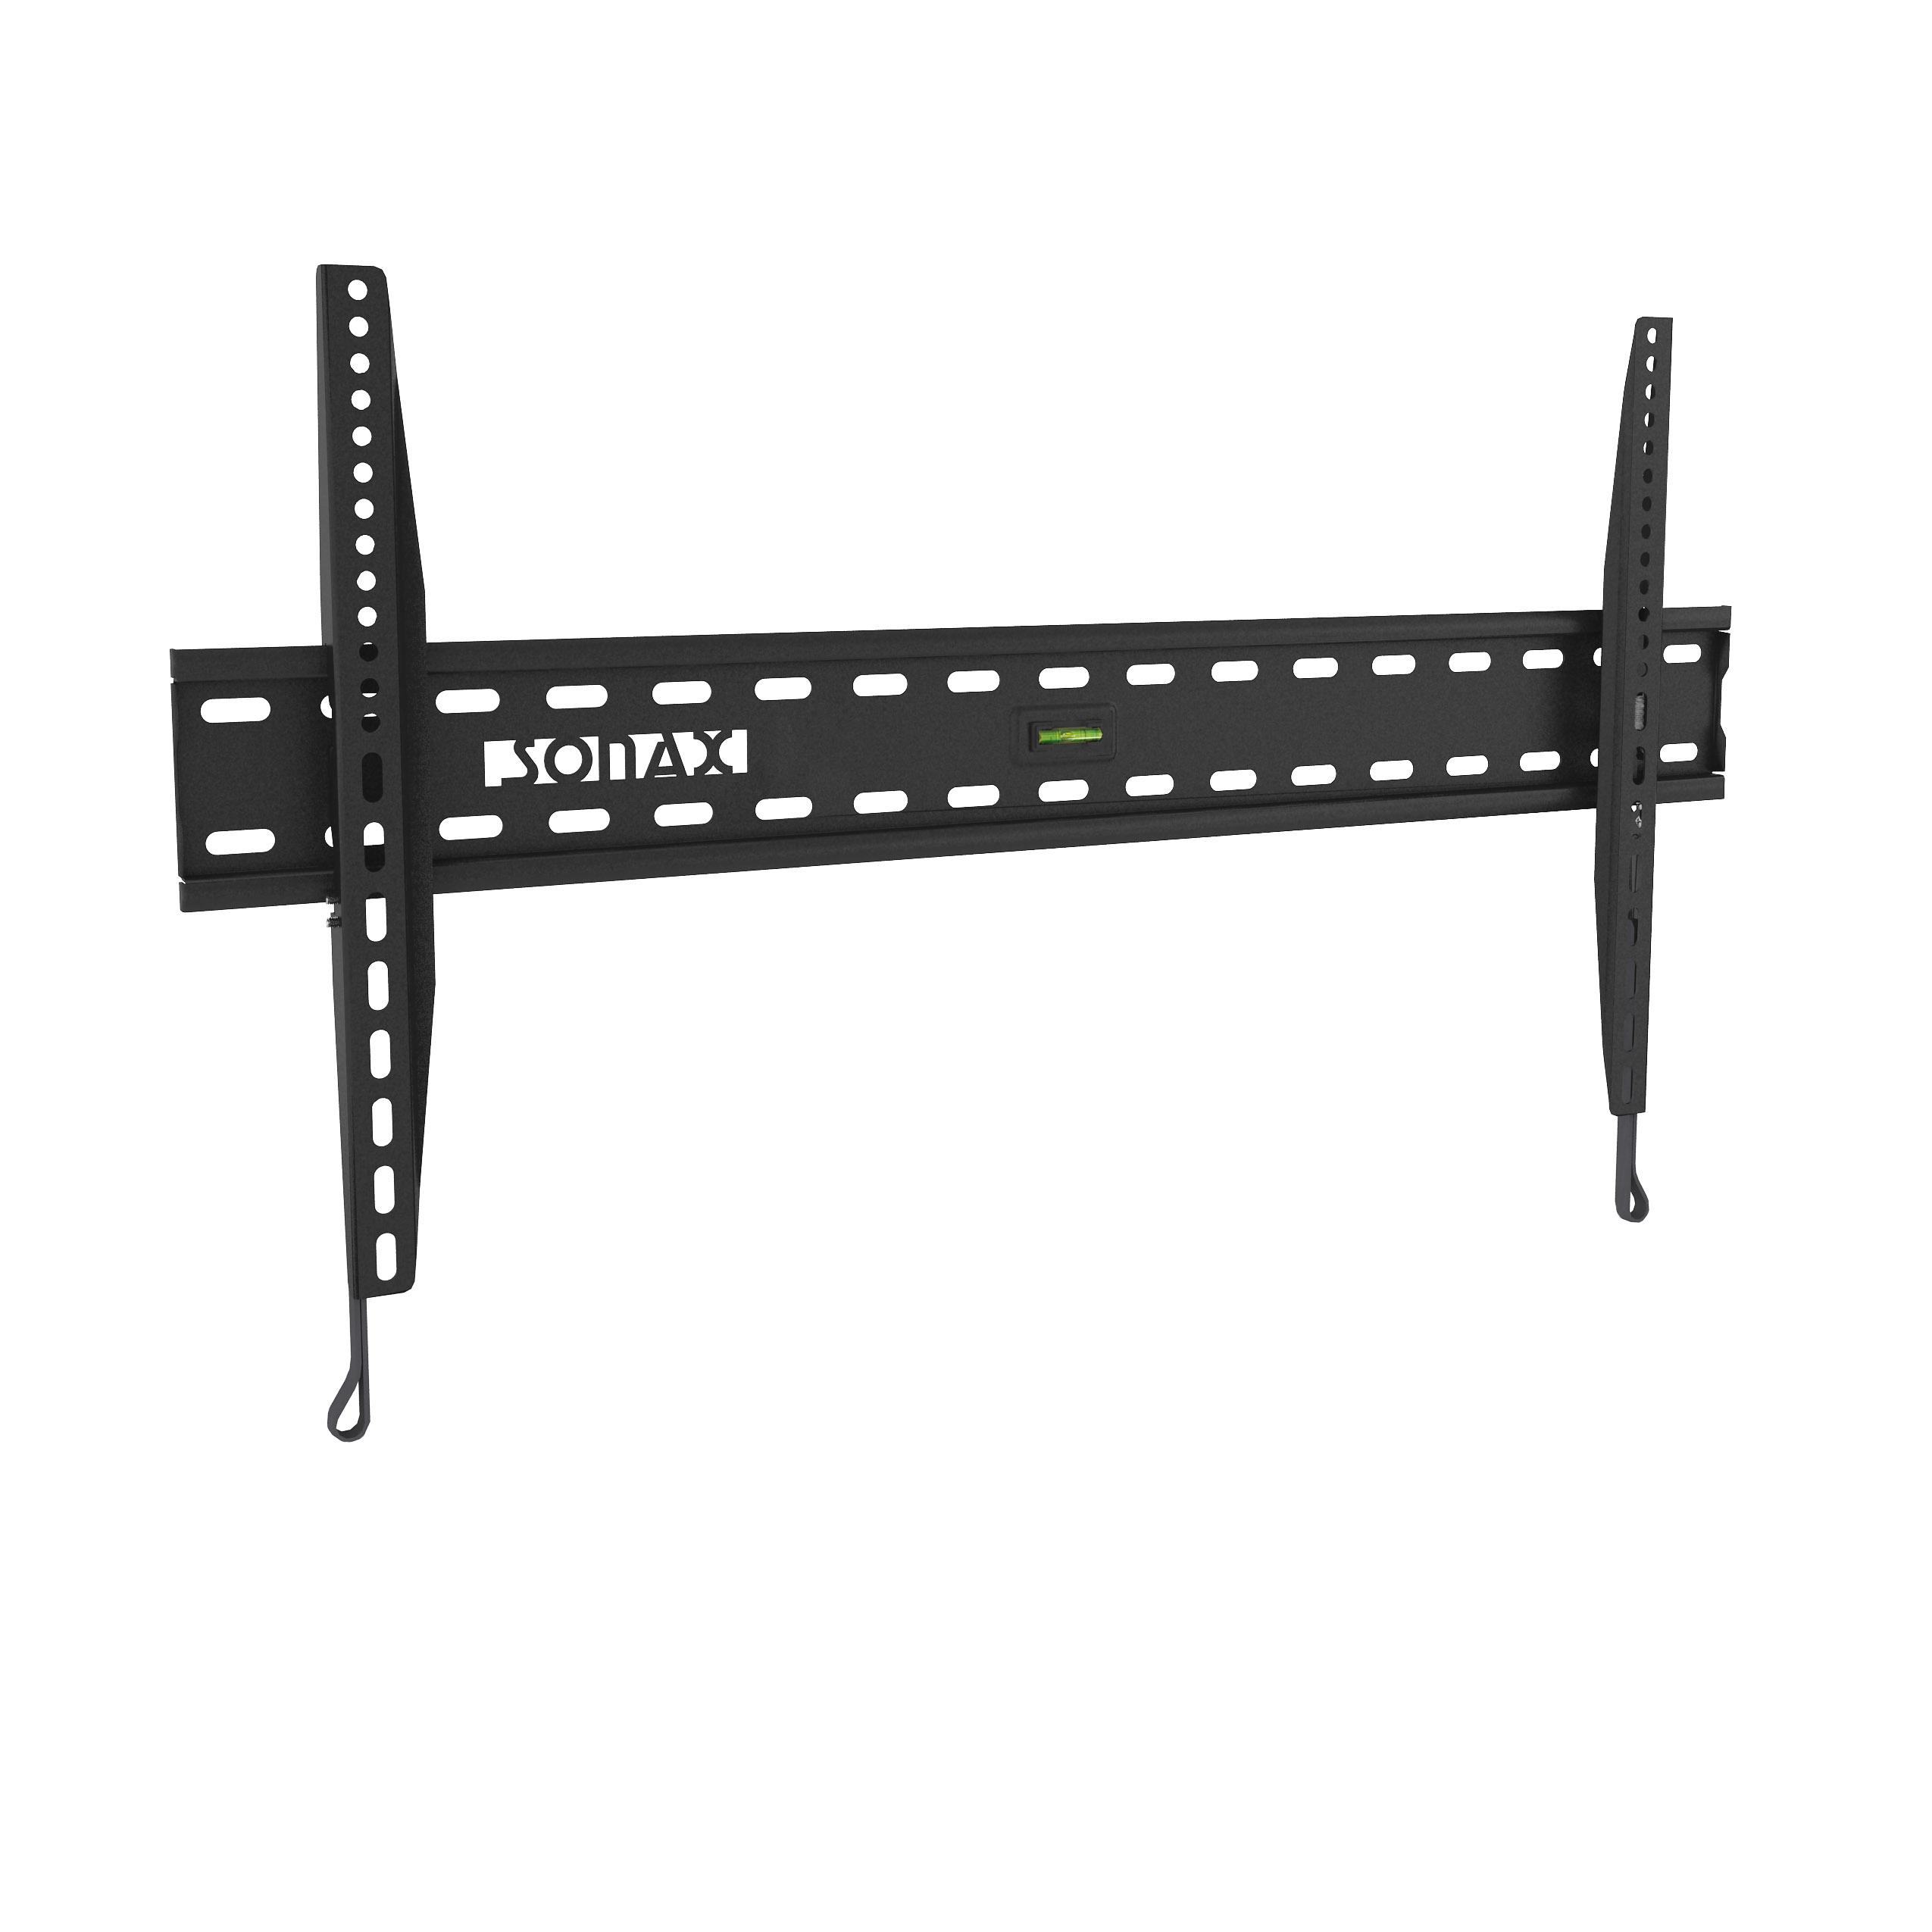 "Sonax E-0155-MP Fixed Low Profile Wall Mount for 32"" 65"" TVs by SONAX"